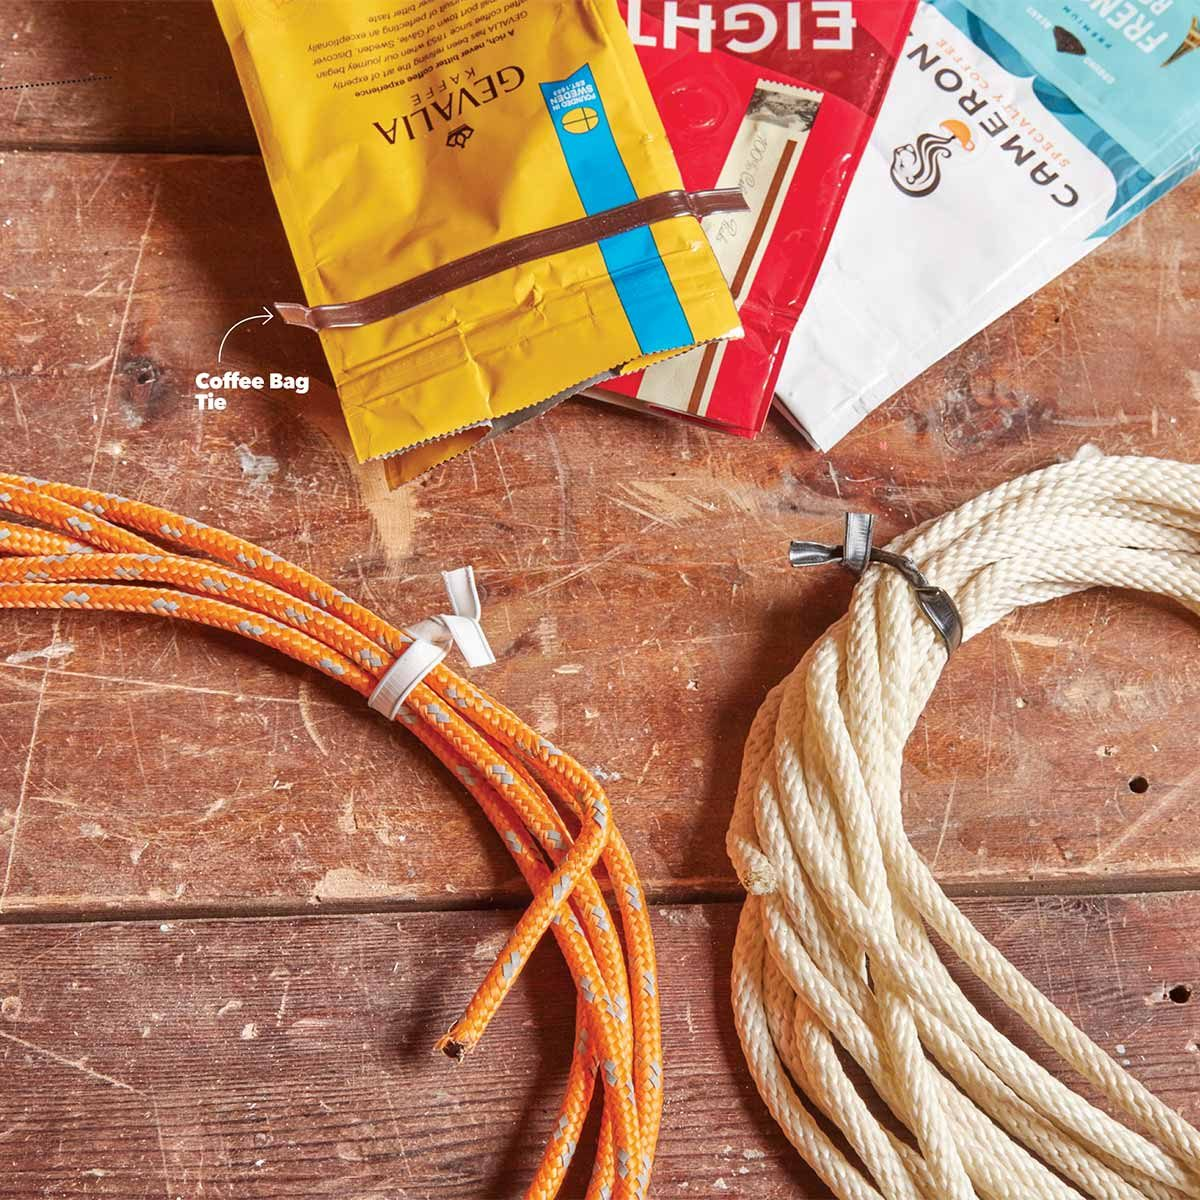 Coffee Bag Ties